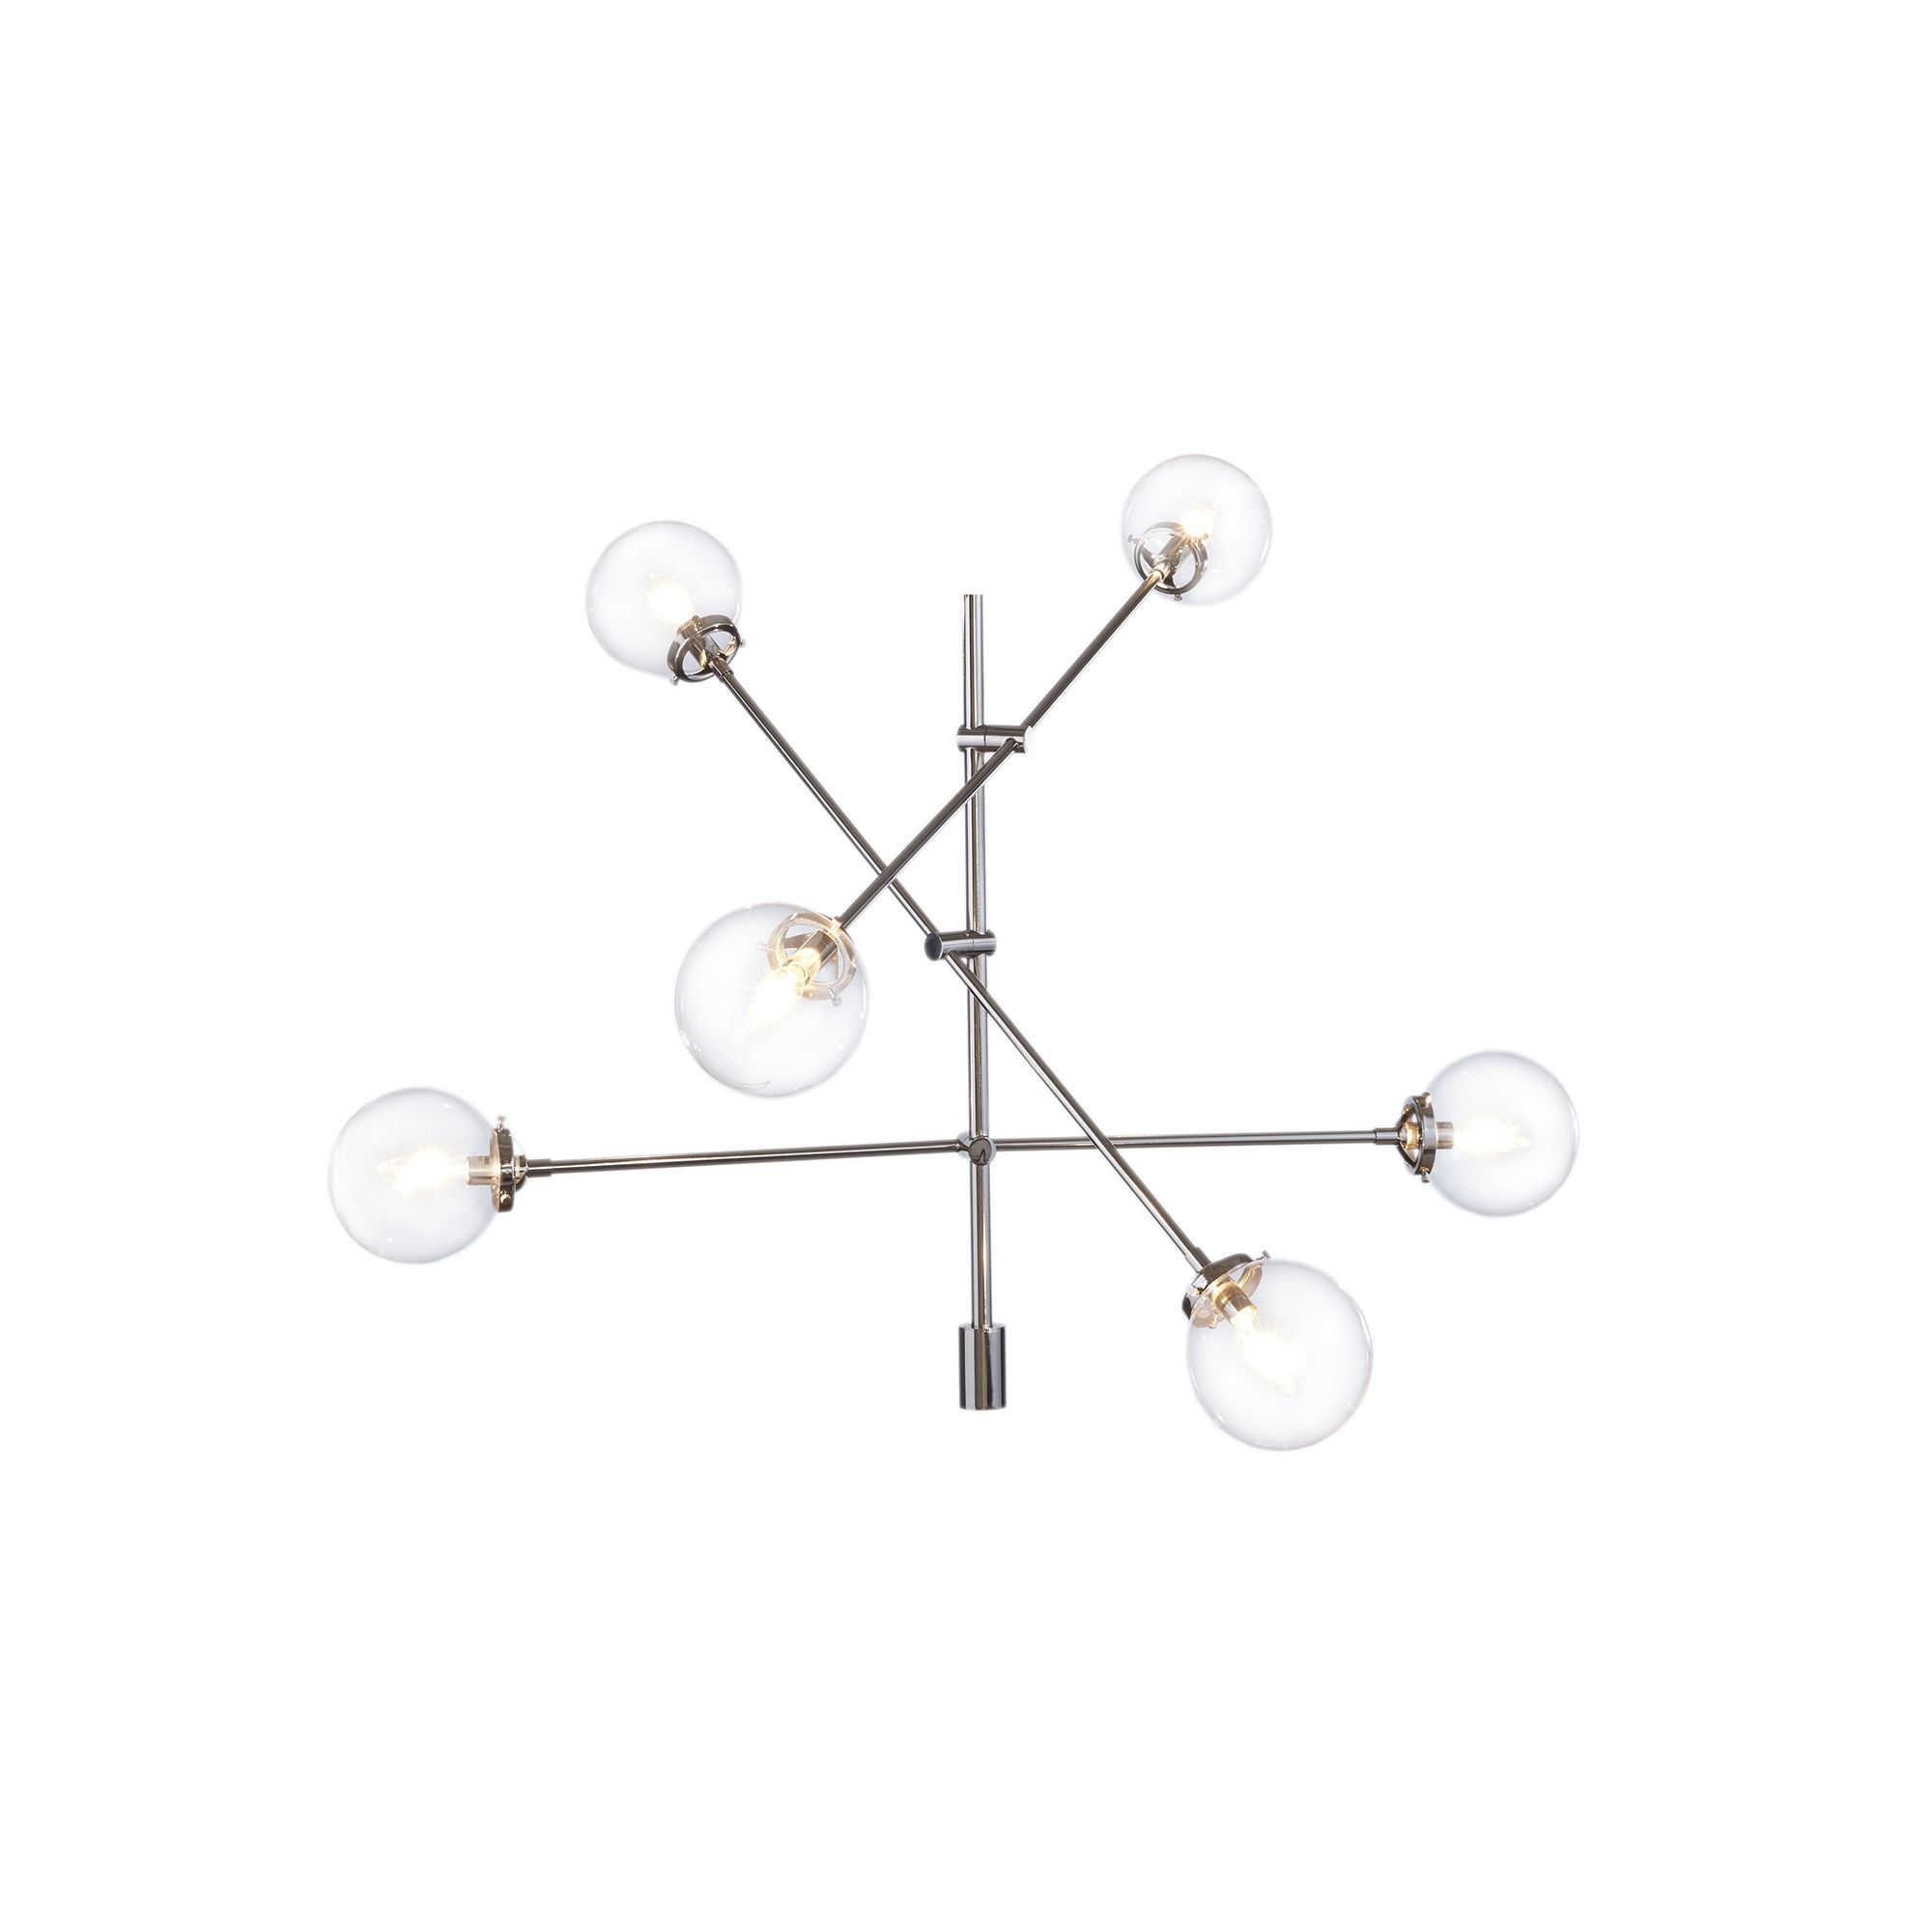 Langley Street Bensley Antique 6 Light Sputnik Chandelier For Eladia 6 Light Sputnik Chandeliers (View 13 of 30)